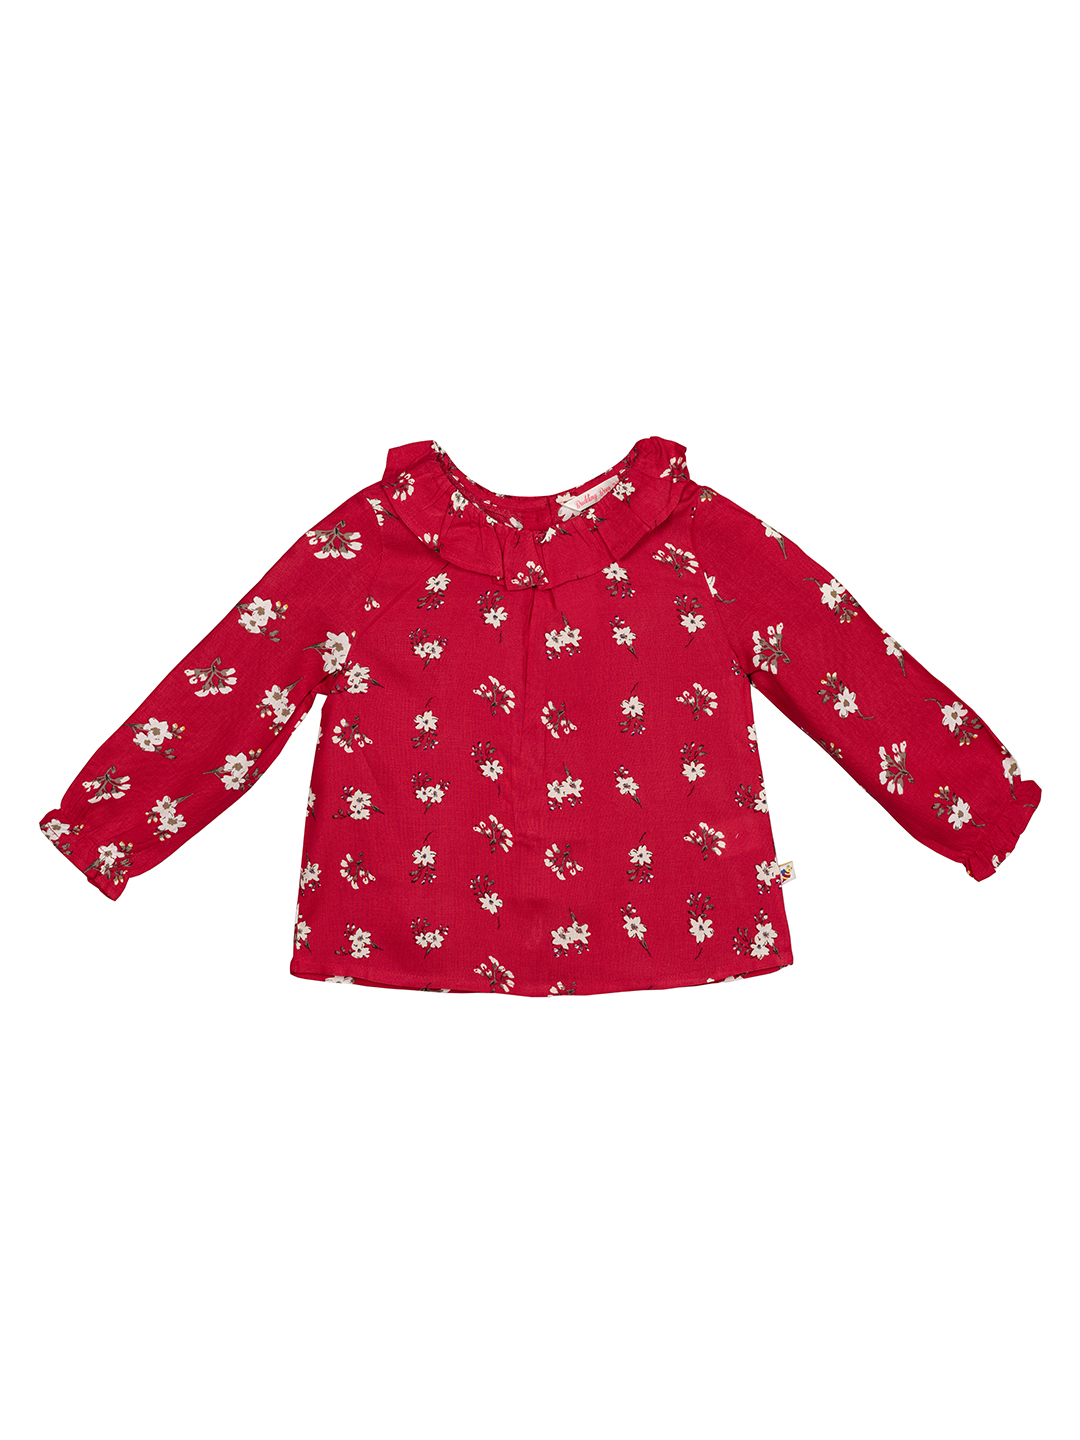 Budding Bees | Budding Bees Infants Red Fl. Top-Red